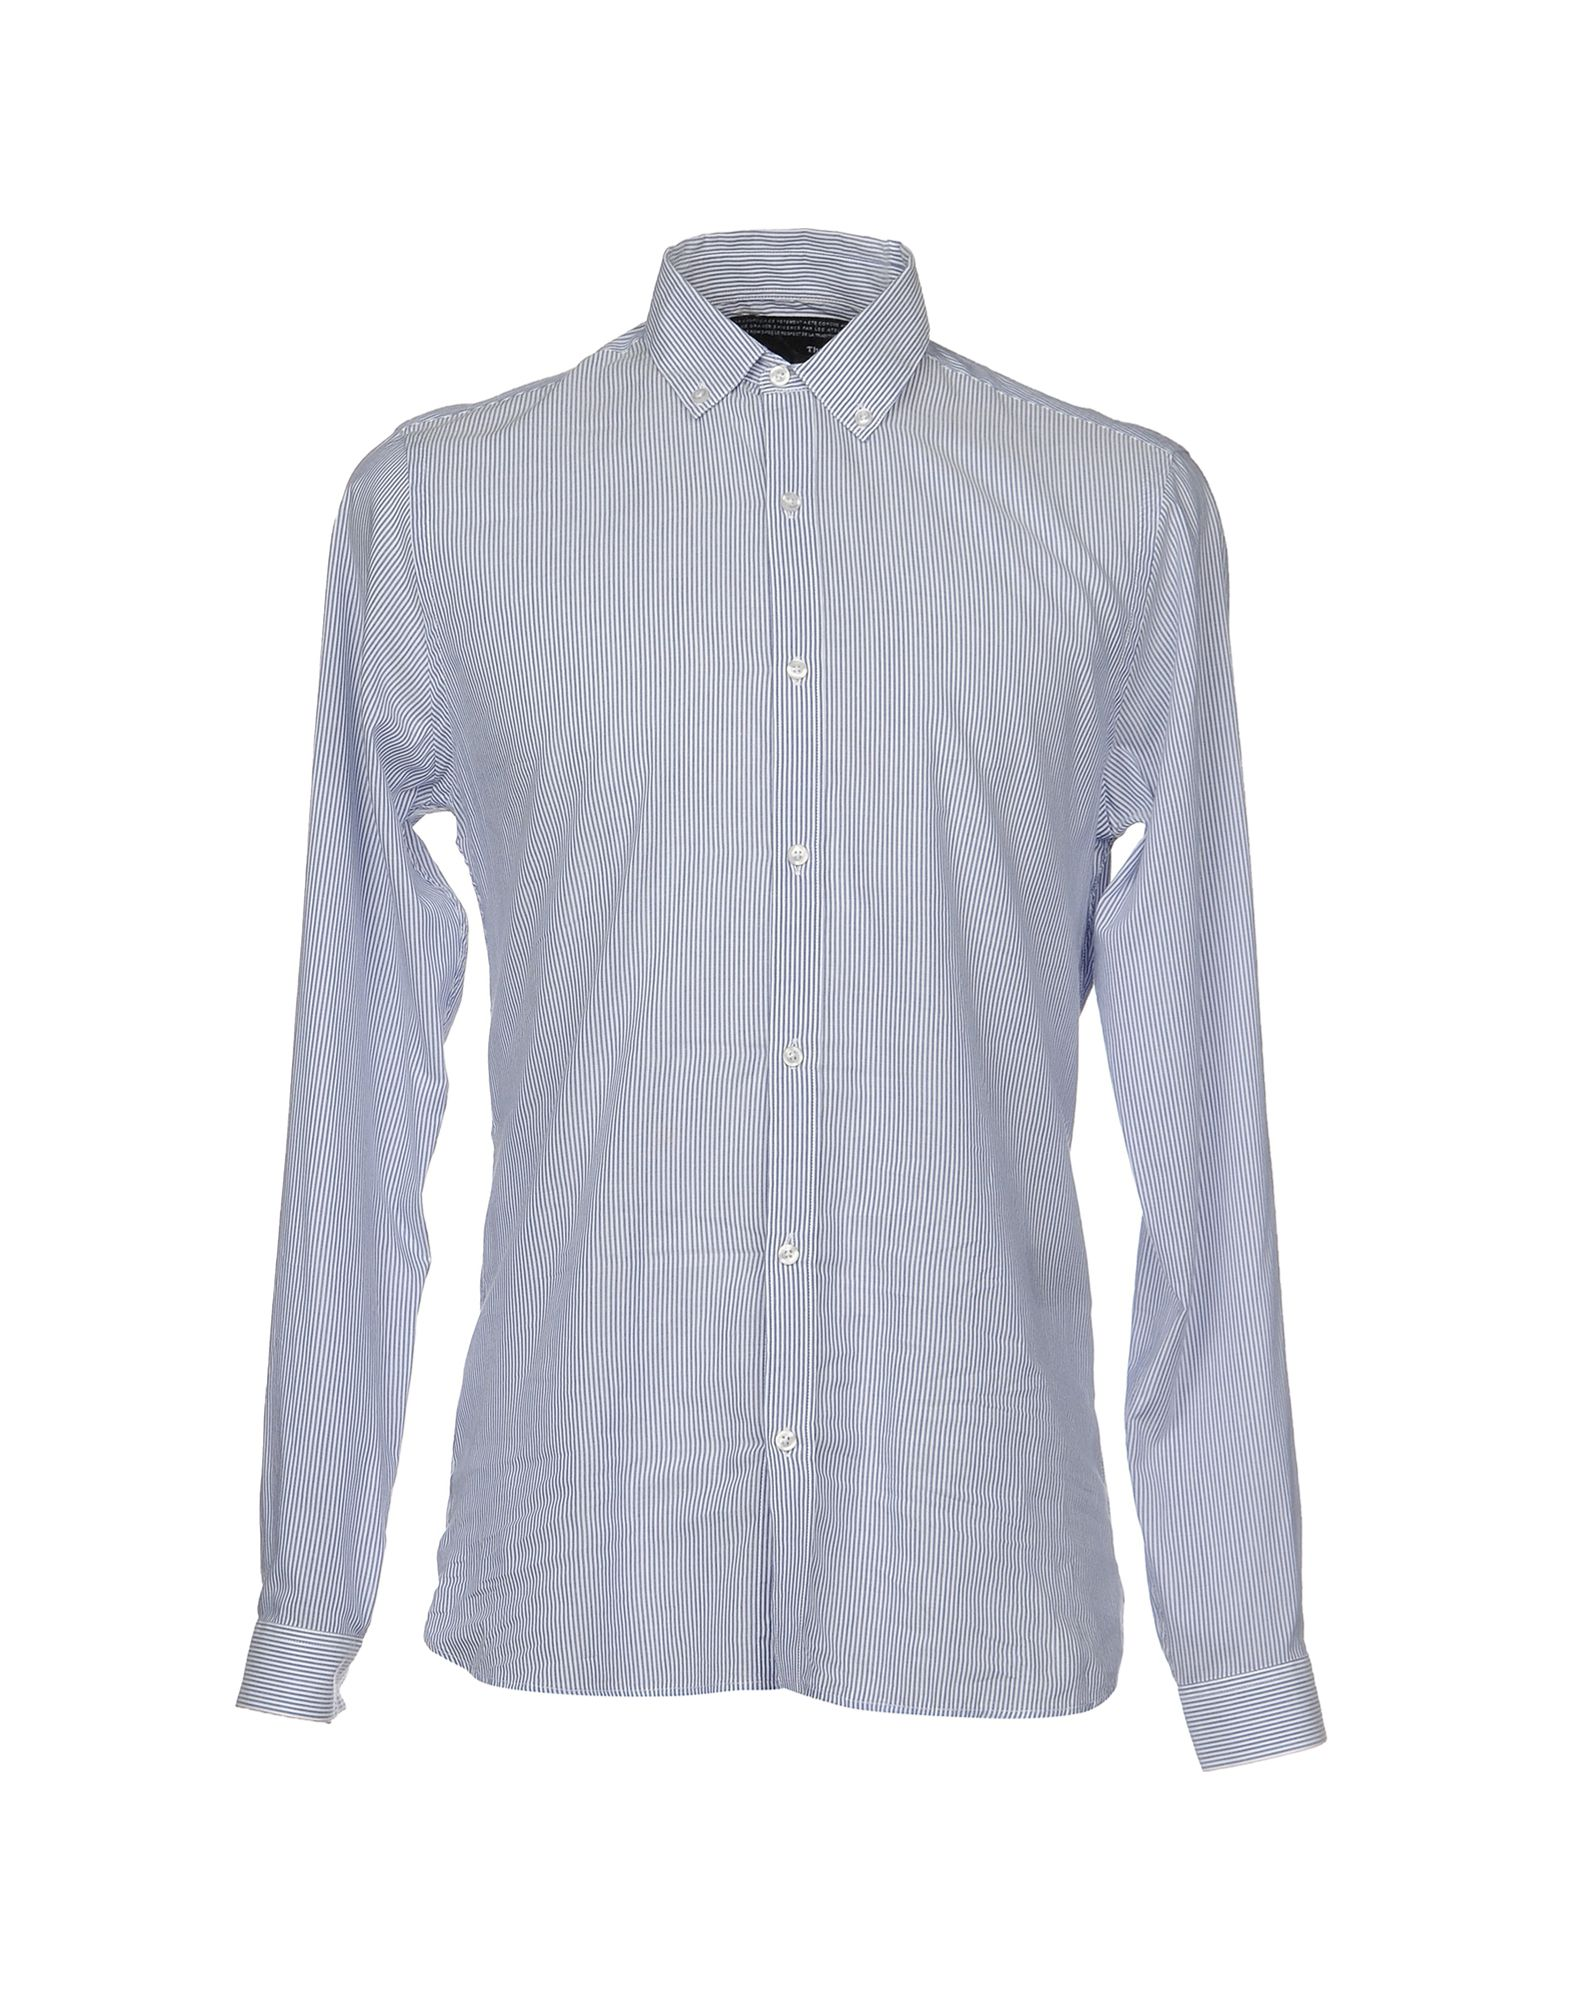 Camicia A Righe The Kooples Uomo - Acquista online su